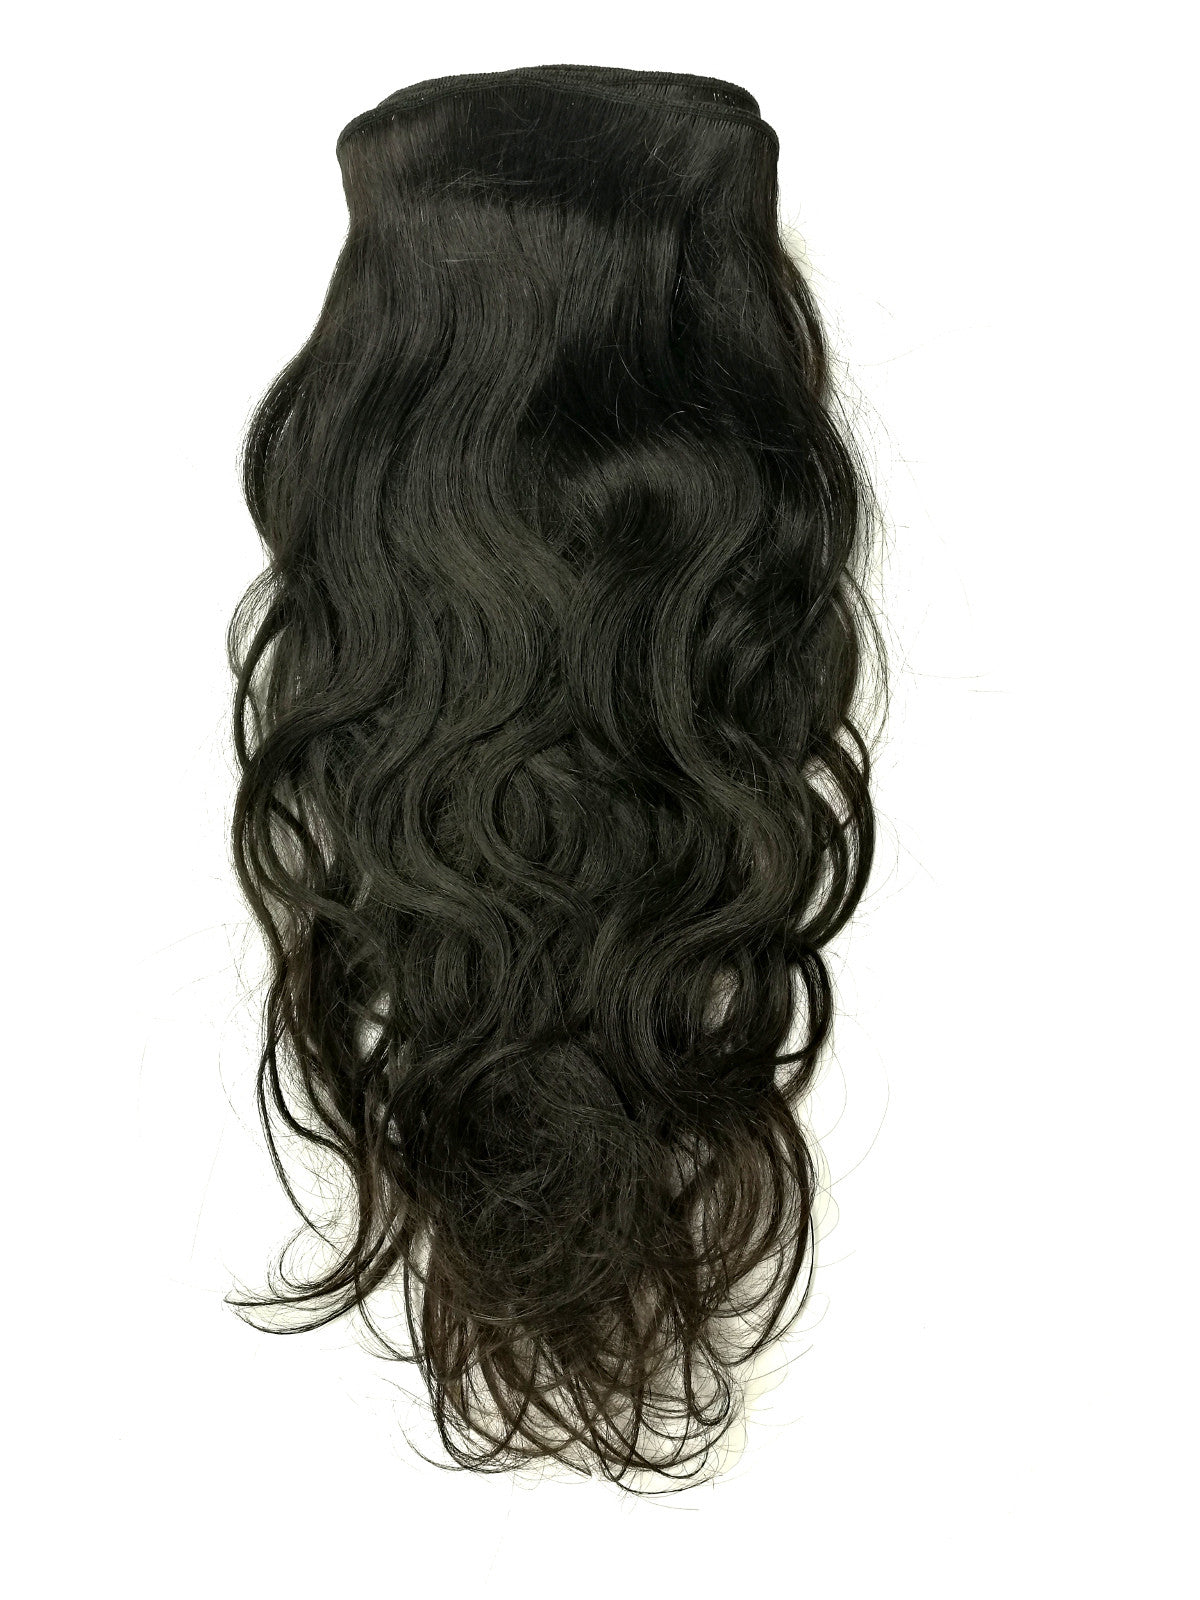 BRAZILIAN BODY WAVE - Euryale Virgin Hair